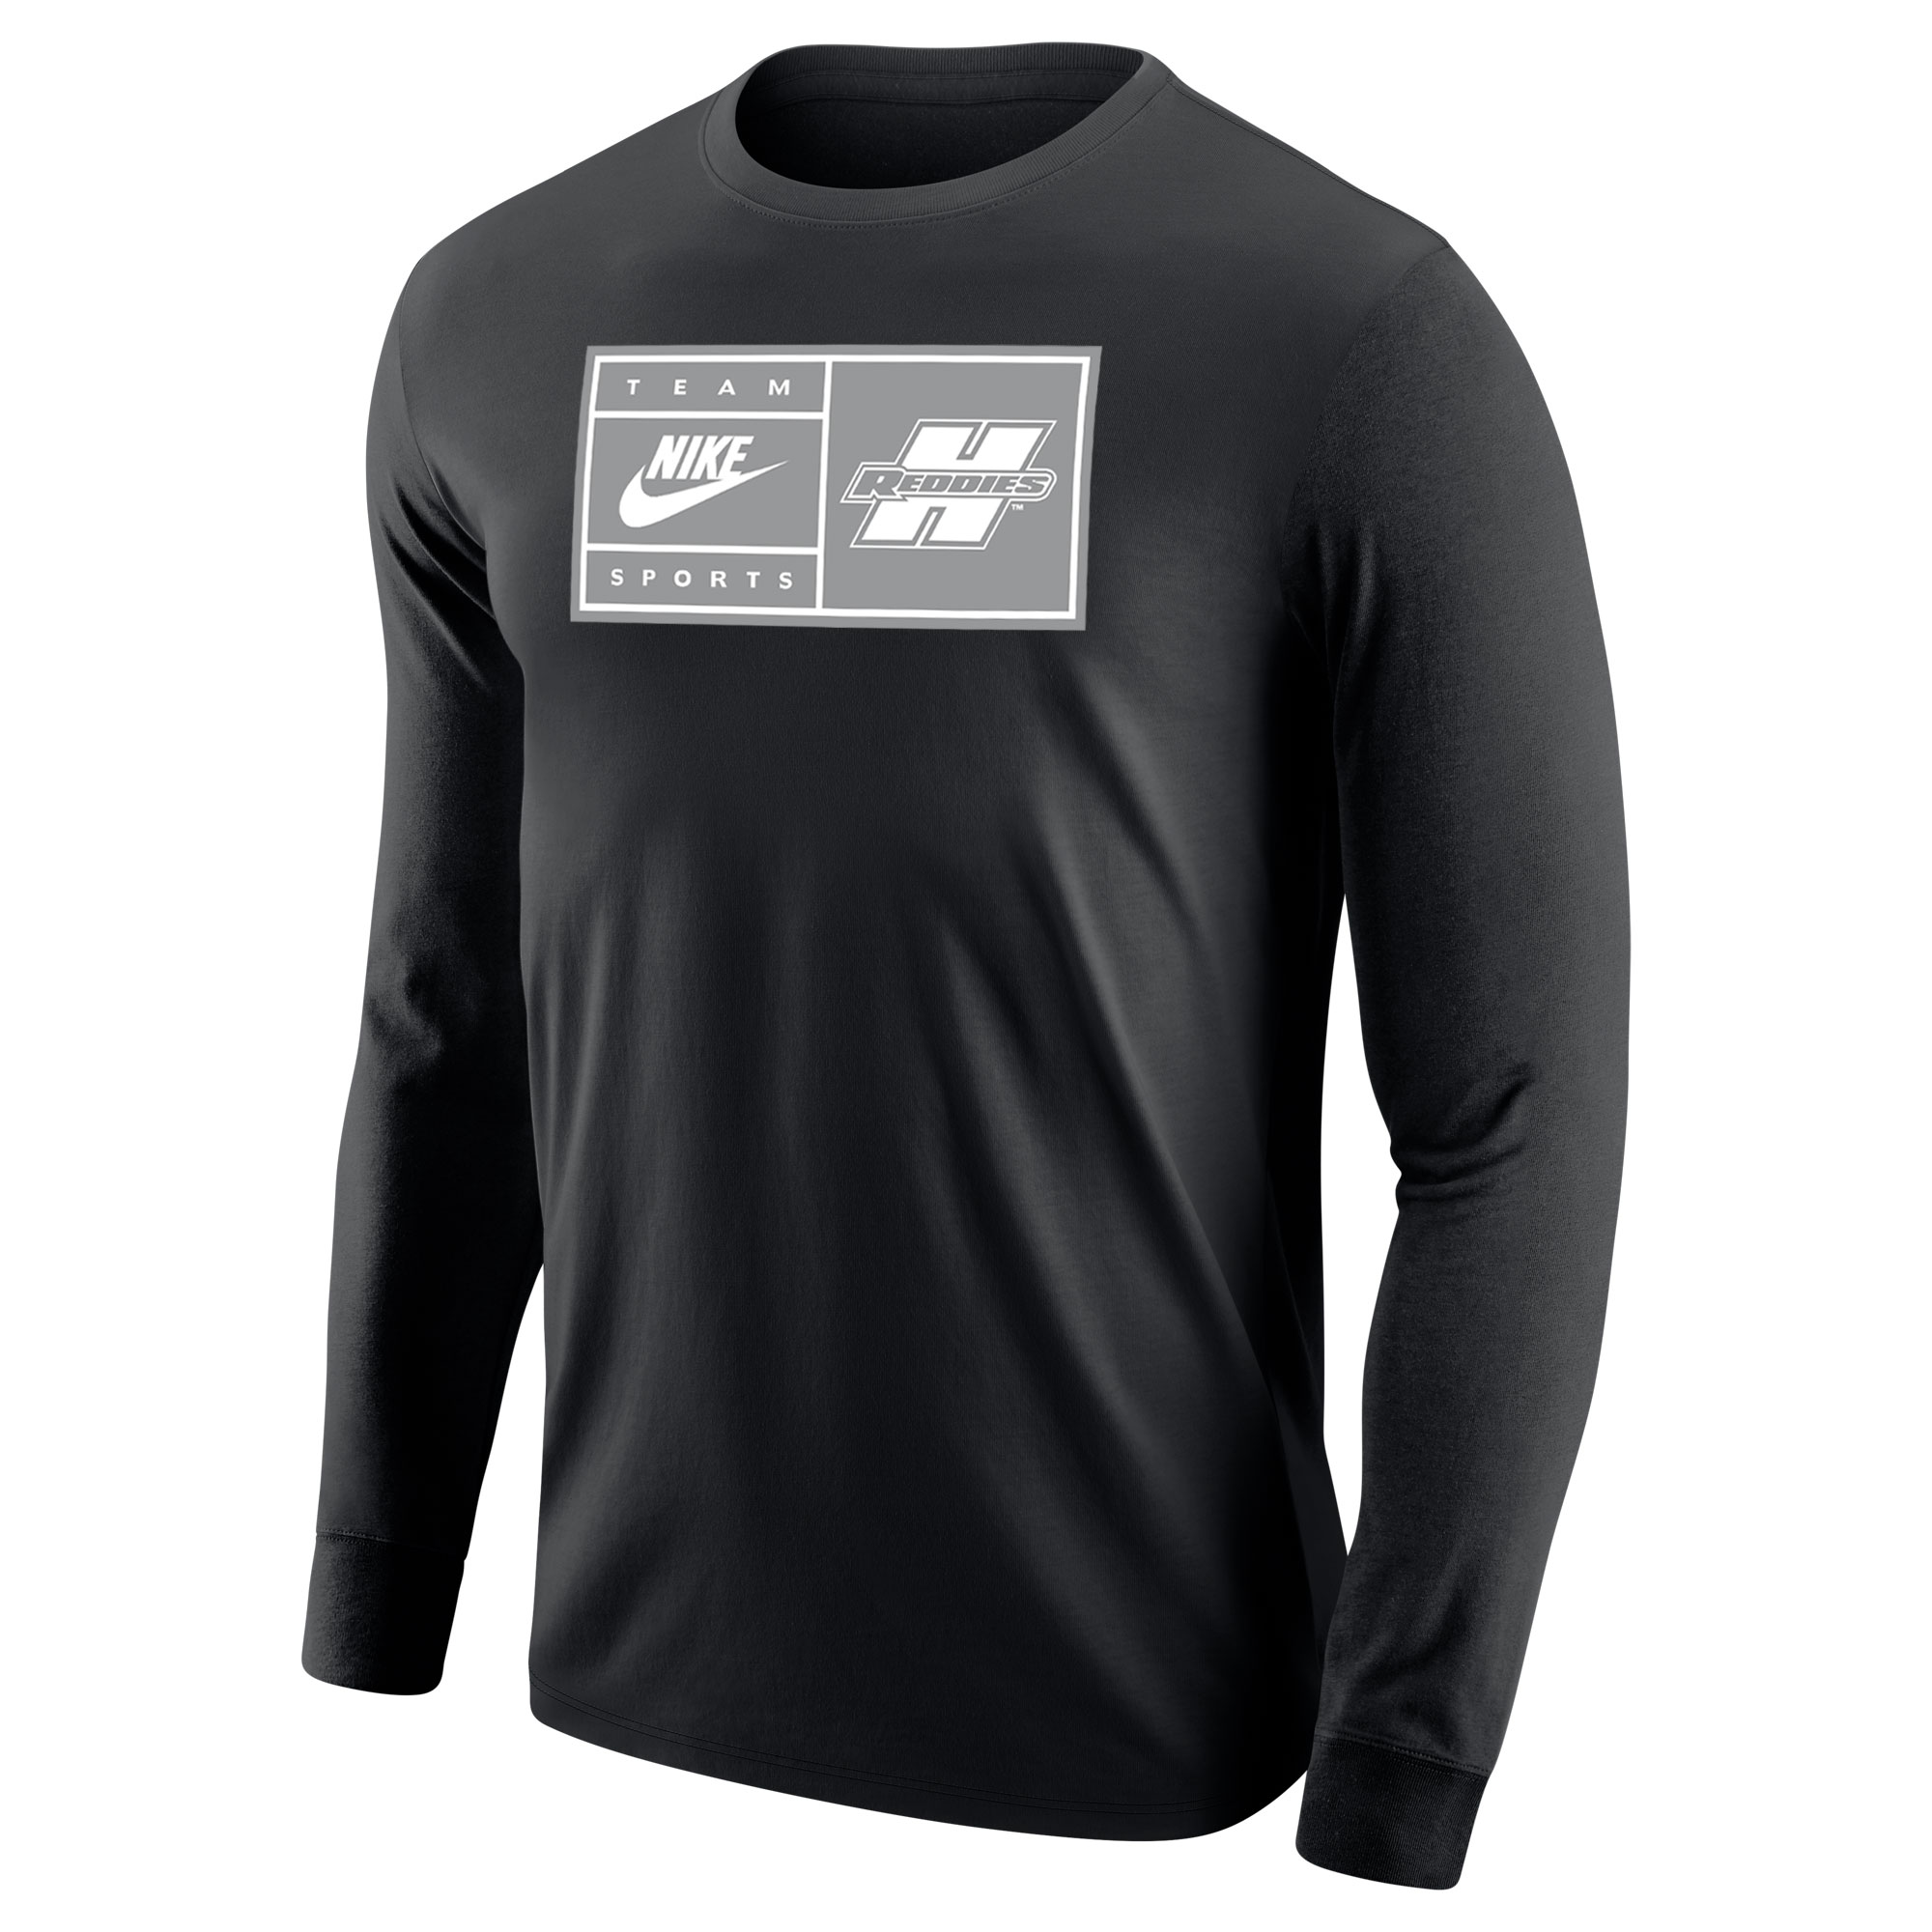 Henderson Reddies Nike Team Sports Long Sleeve T-Shirt